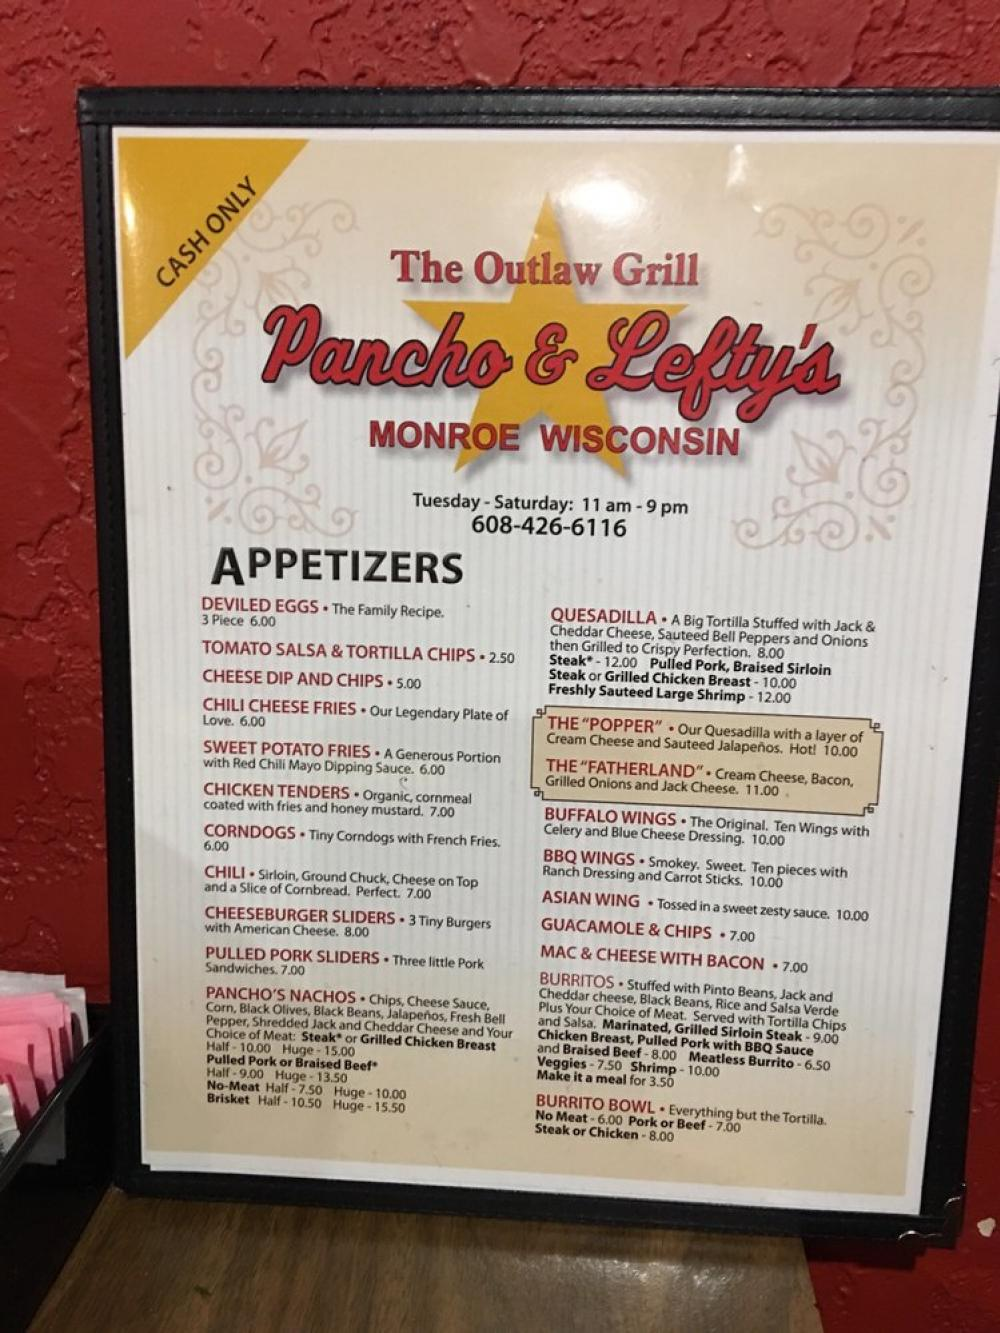 Pancho and Lefty's Restaurant